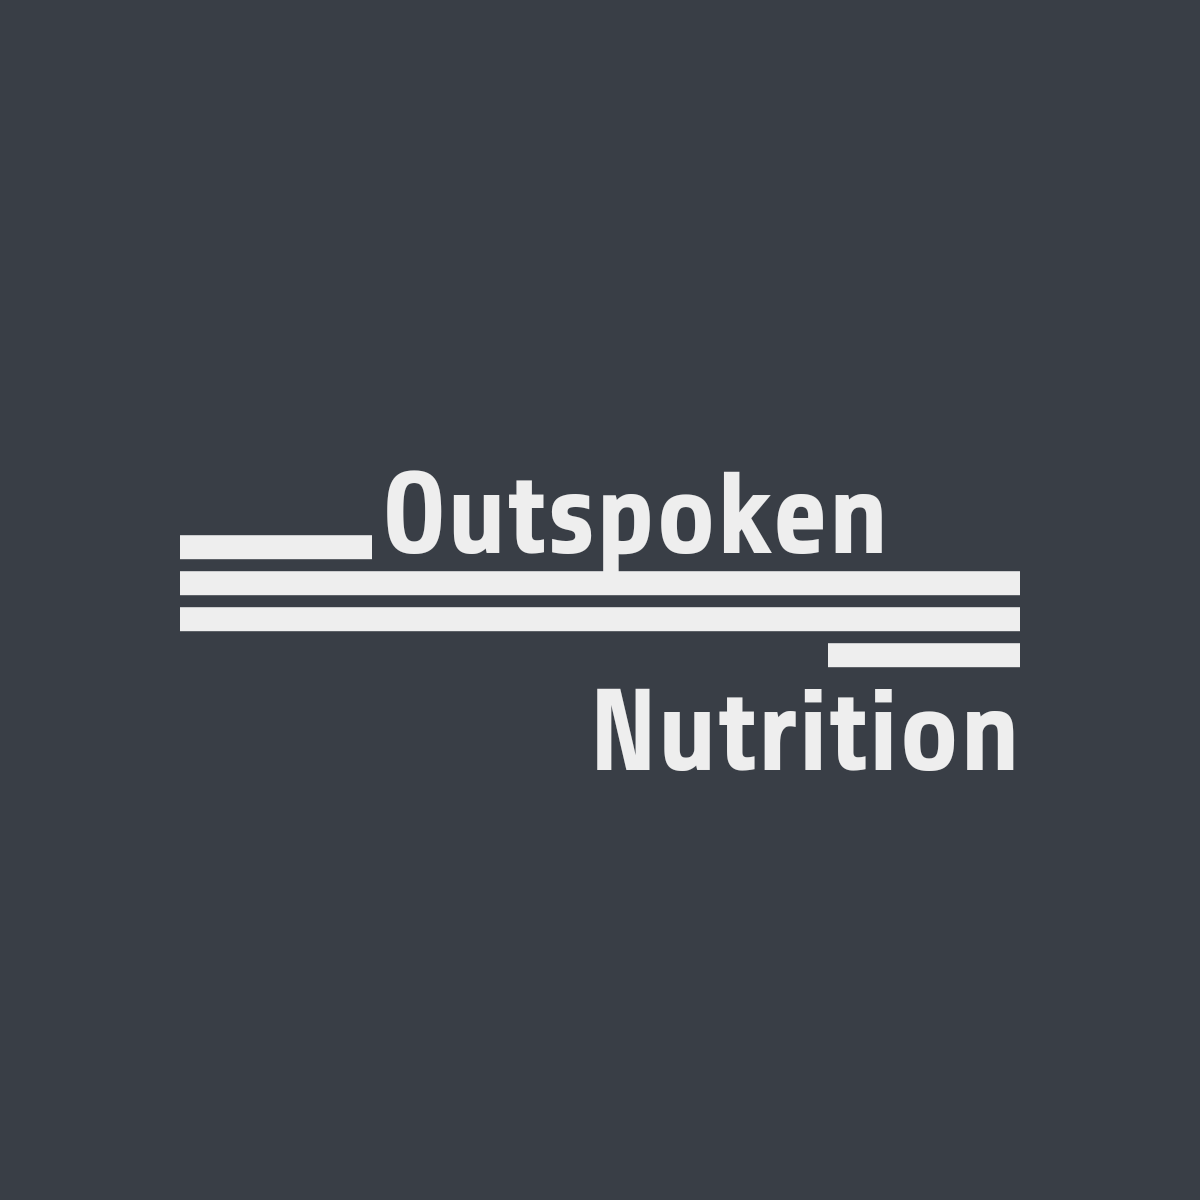 Outspoken Nutrition